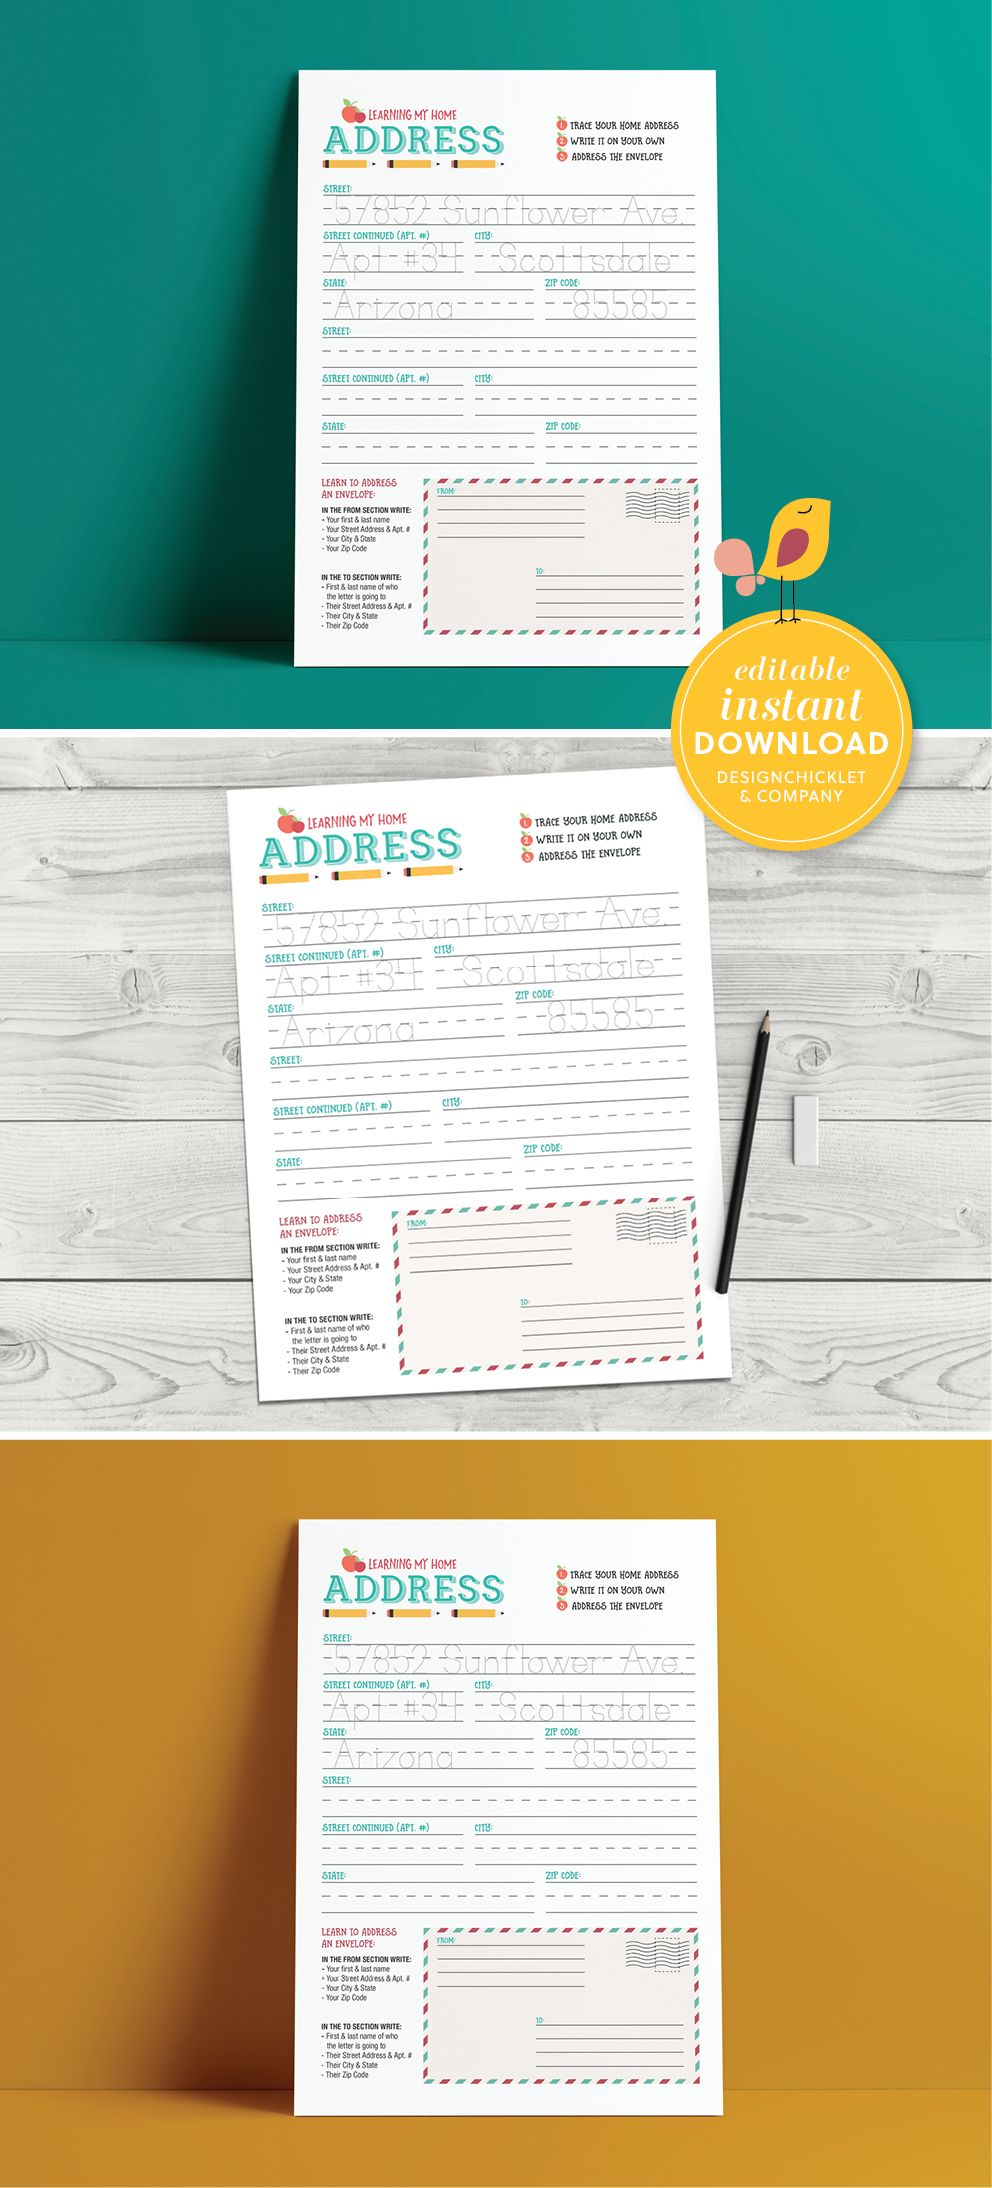 Editable Instant Download Home Address Learning Worksheet Etsy Learning Worksheets How To Memorize Things Writing Practice